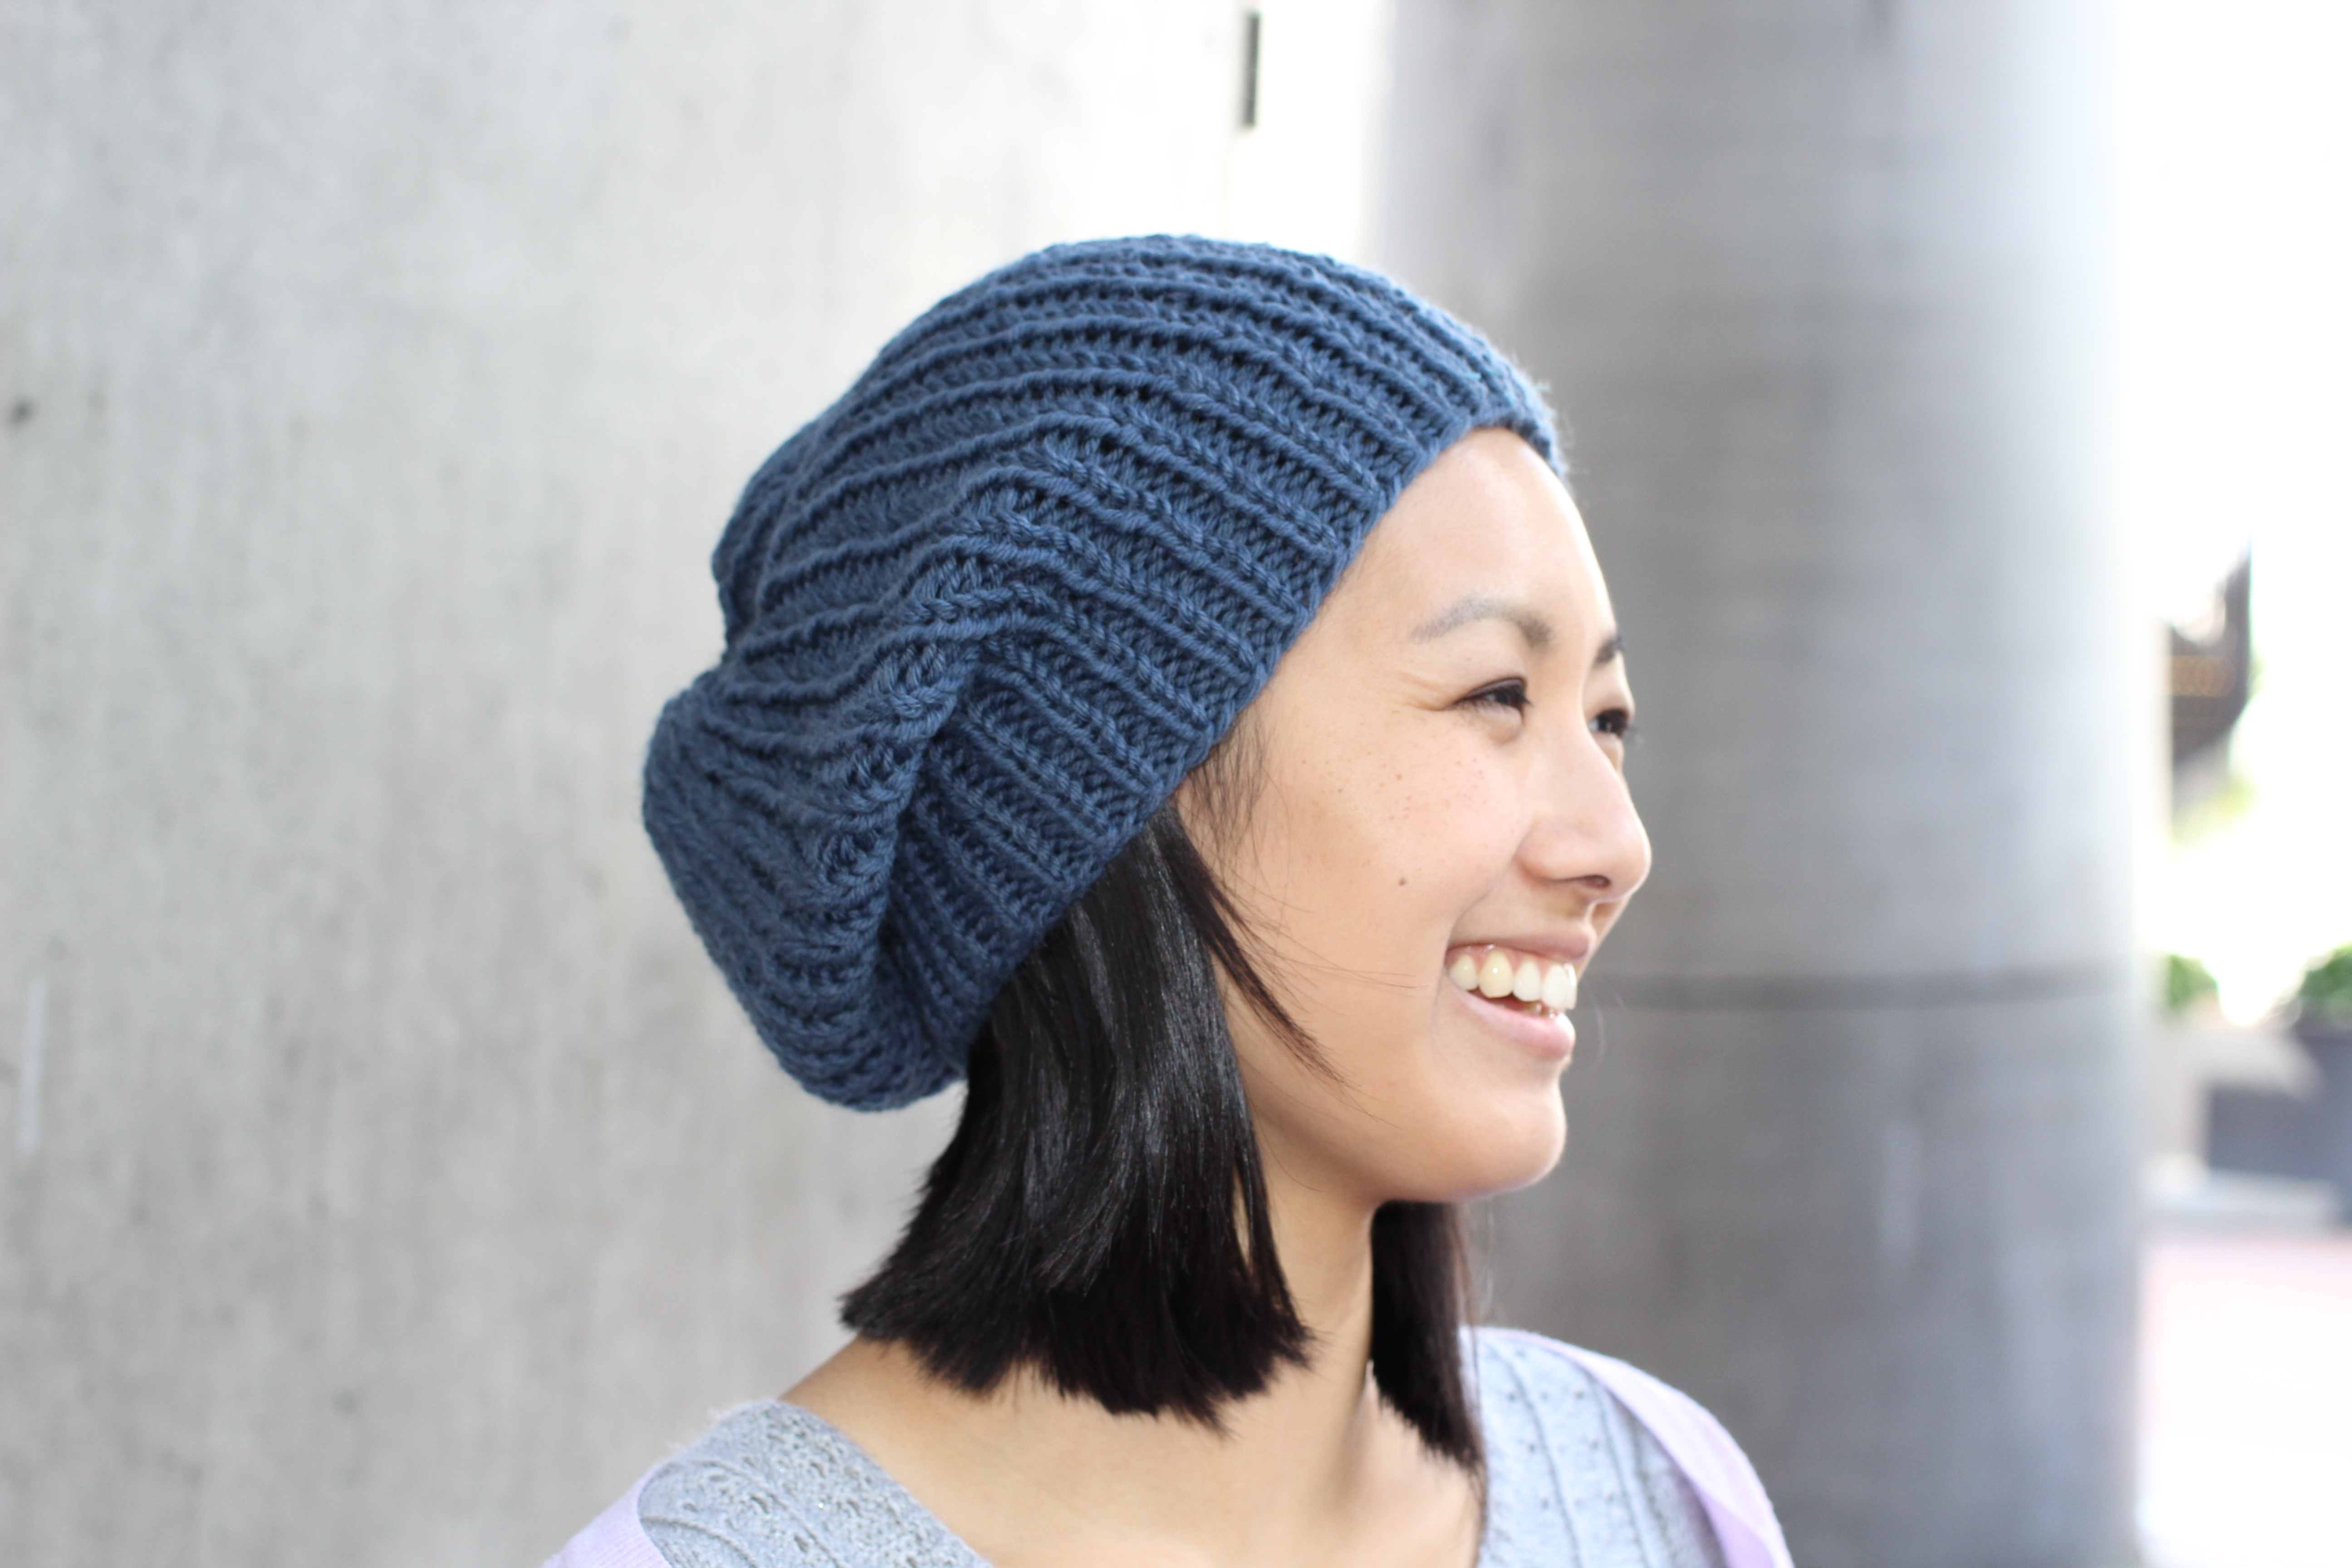 free pattern  Hipster Hat Rosalind Craft Supplies cdcdcb8d6f2